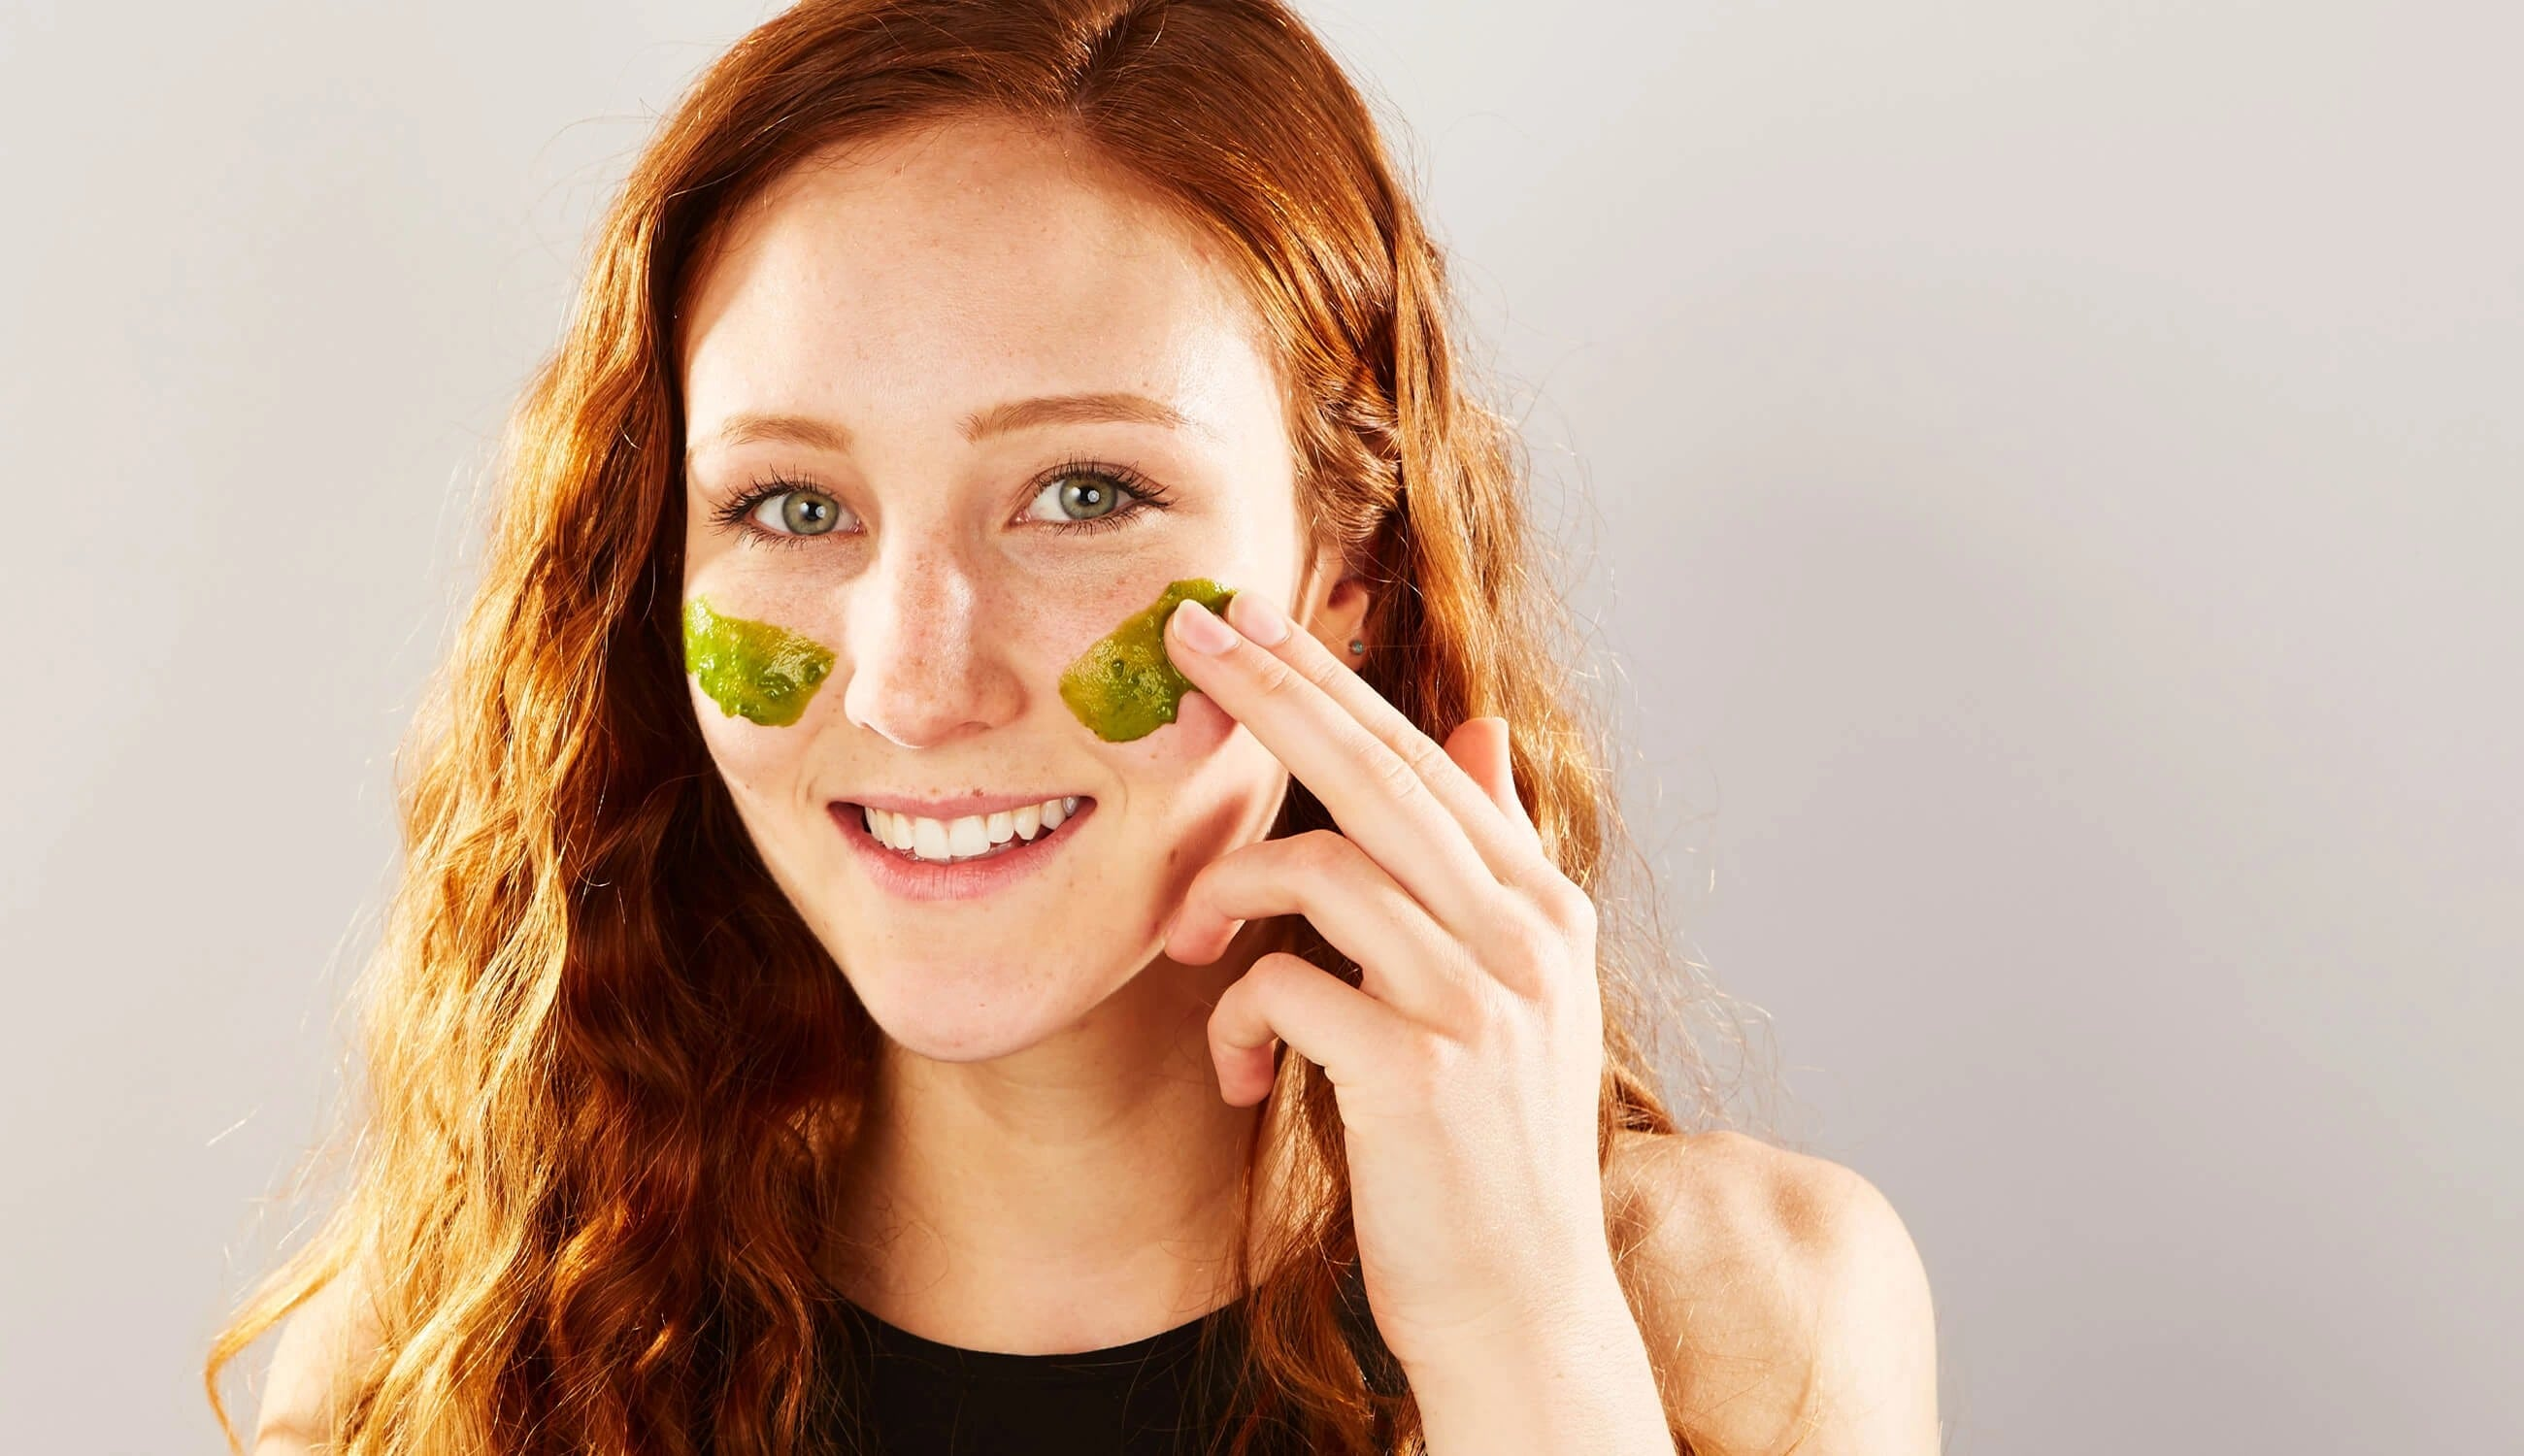 woman applying green paste to her cheeks.